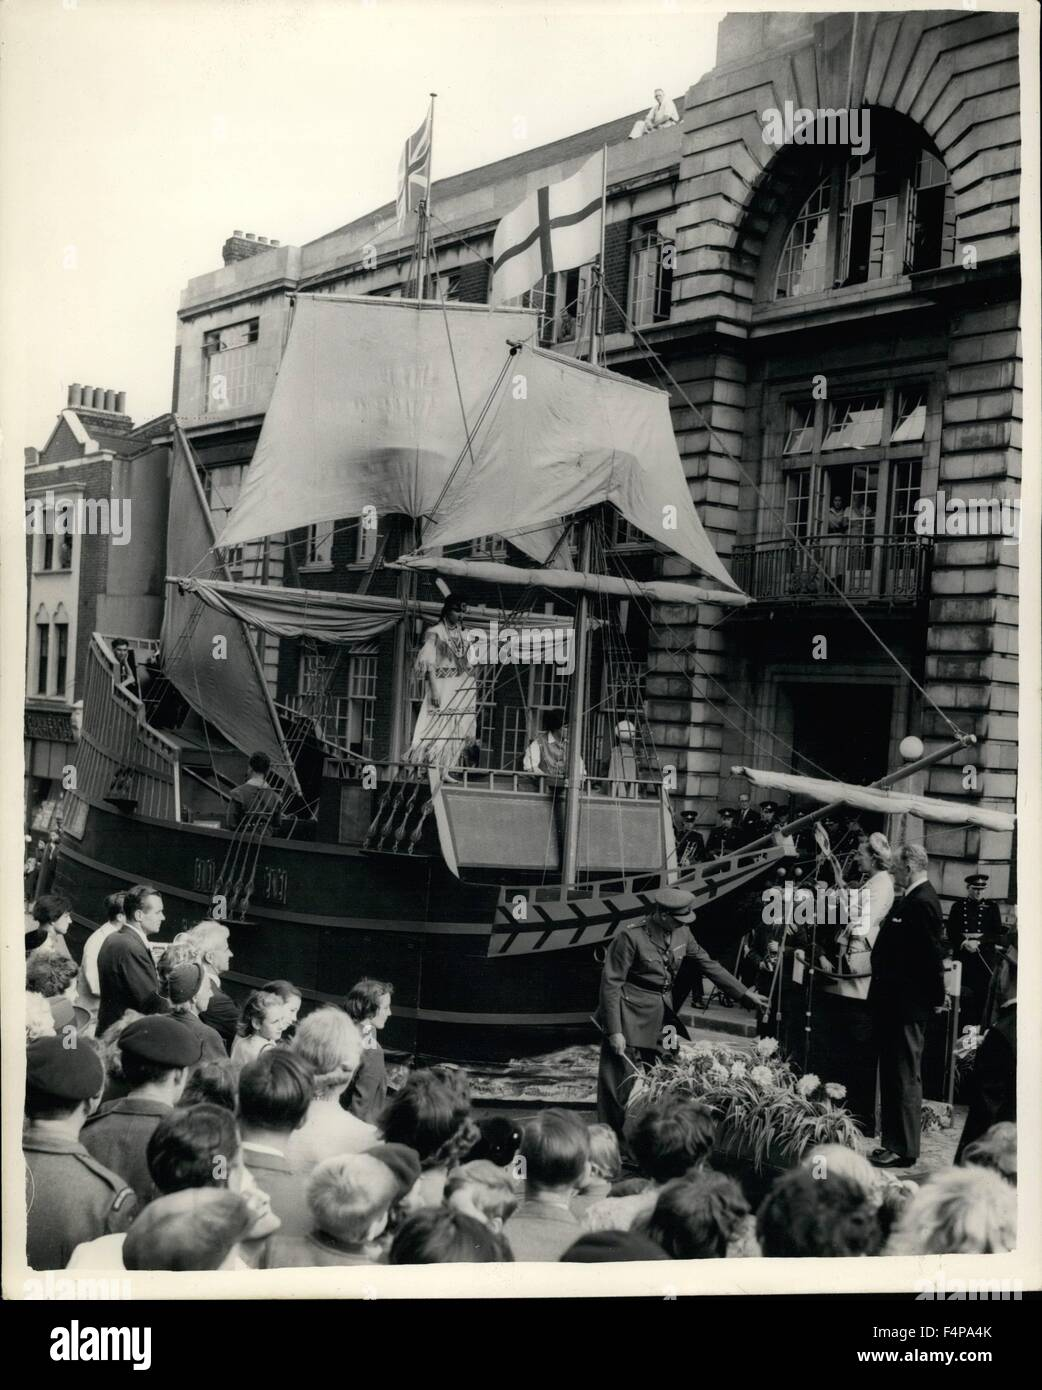 Set. 5, 1957 - Countess Mountbatten launches replica of the Susan Constant A replica (which will never sail) of Stock Photo